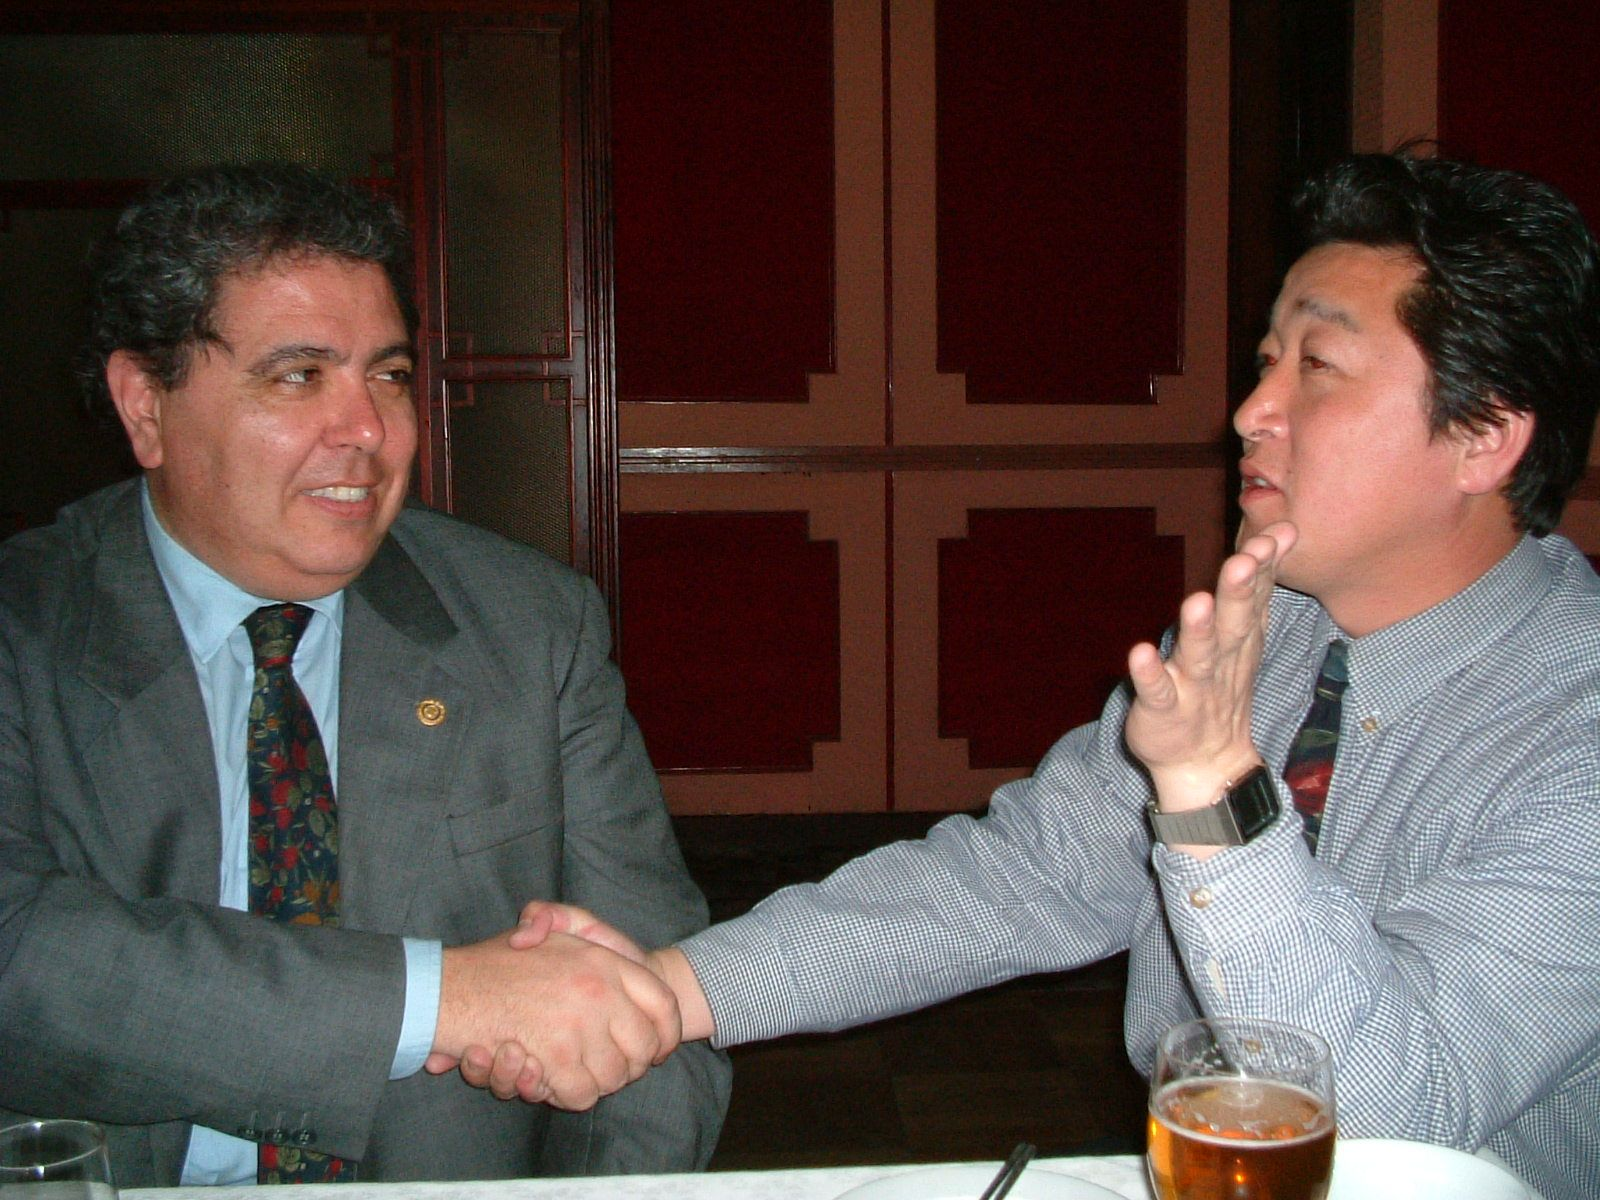 PHF Dr. Massimo Urbani was posted 3 times to Pyongyang (with the WHO, UNICEF and the Italian government) where he first met our project partner Dr. Jong Sang Hun in 2003.Here they discuss the dream of establishing the first Rotary club in Pyongyang.